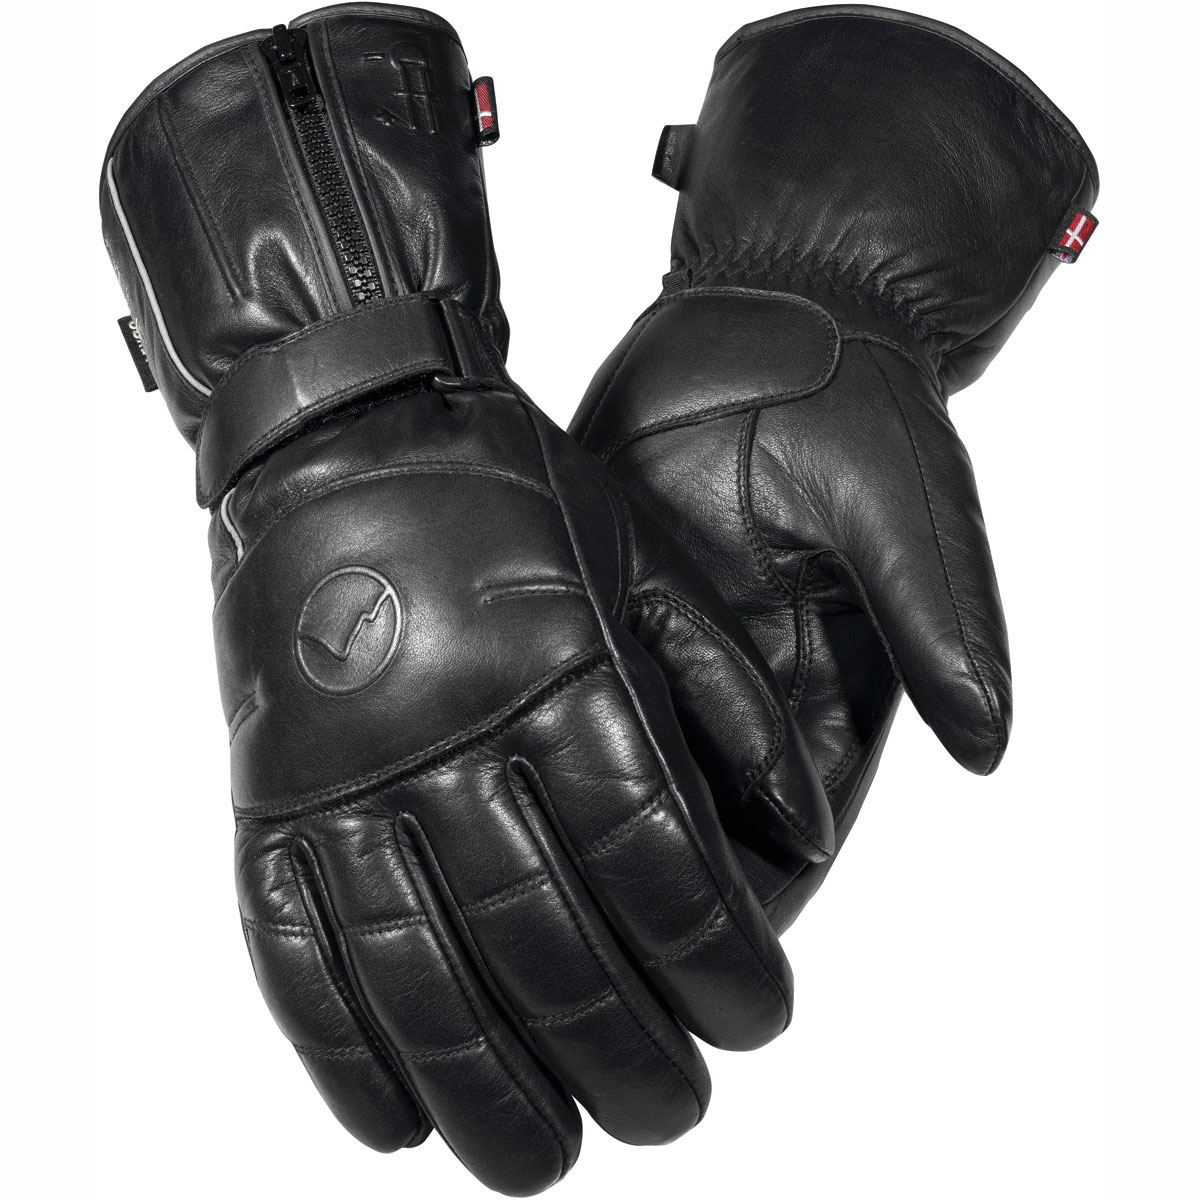 The Dane Basic 3 Gloves